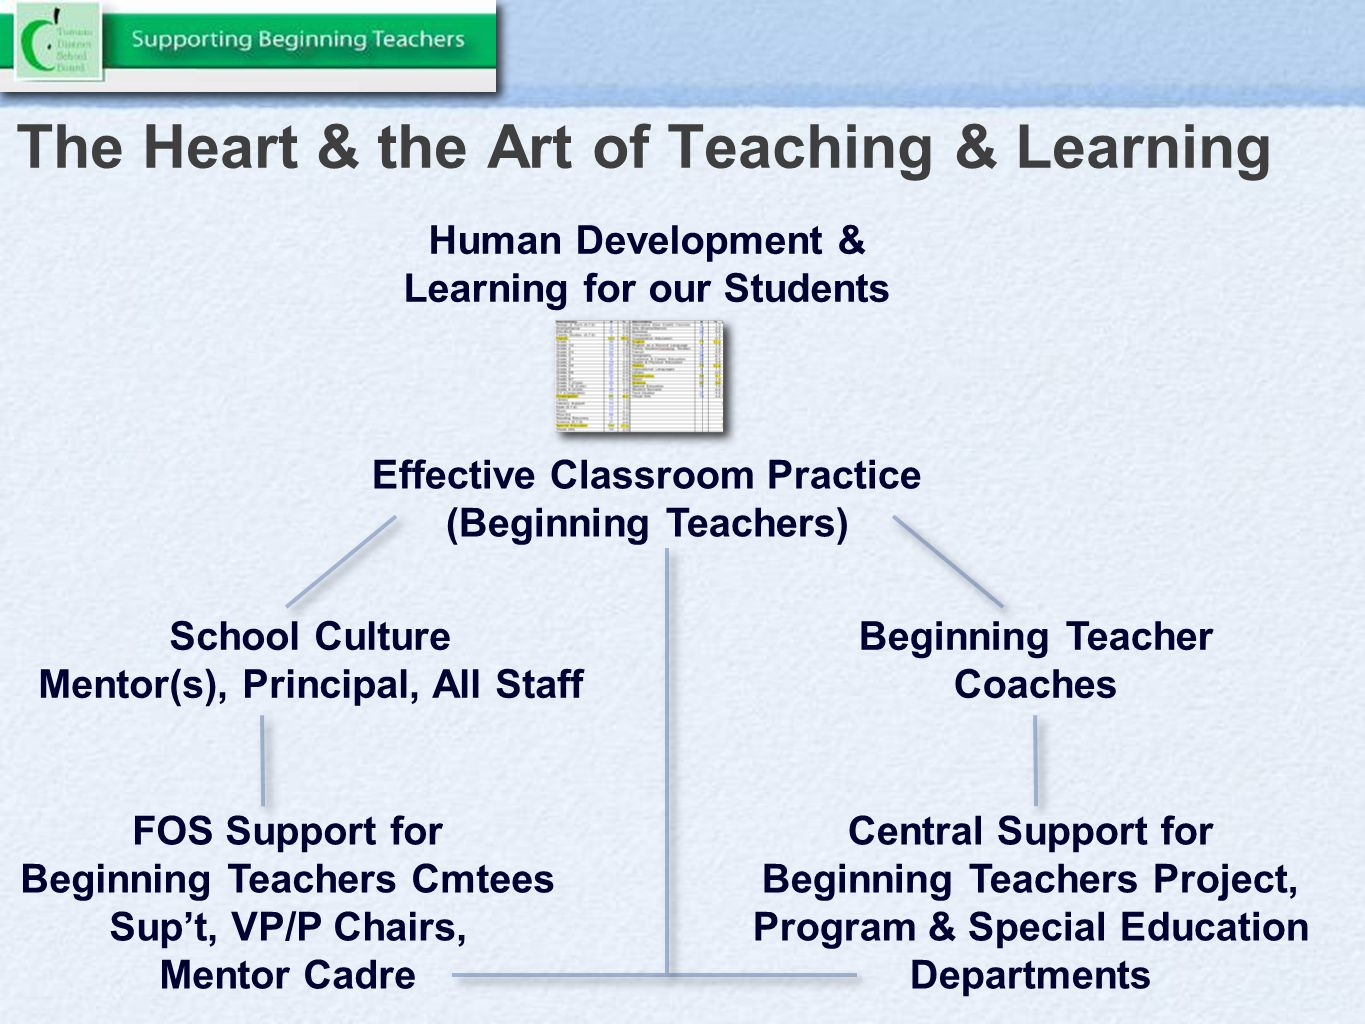 The Heart & the Art of Teaching & Learning Human Development & Learning for our Students Effective Classroom Practice (Beginning Teachers) School Culture Mentor(s), Principal, All Staff Beginning Teacher Coaches FOS Support for Beginning Teachers Cmtees Sup't, VP/P Chairs, Mentor Cadre Central Support for Beginning Teachers Project, Program & Special Education Departments